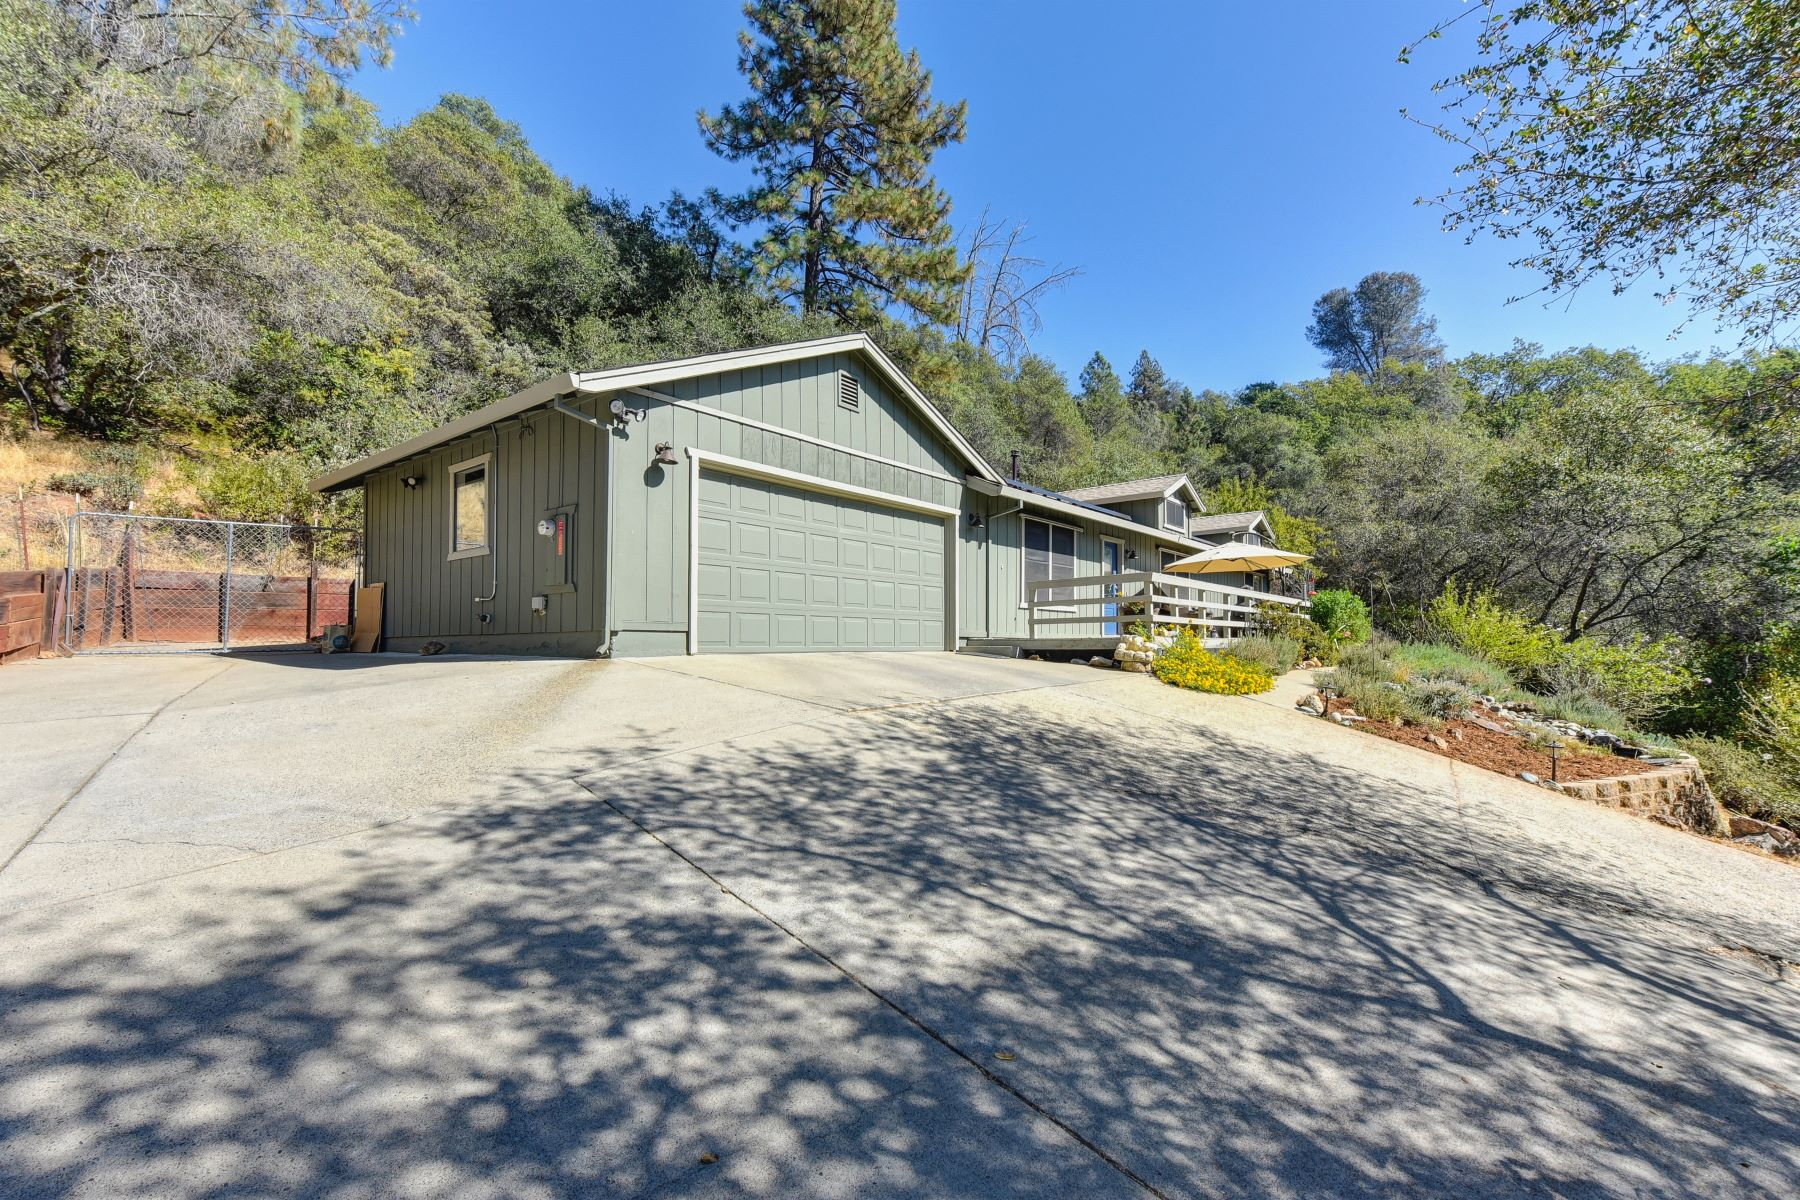 Single Family Home for Active at Great 1 Story Home Situated on a Very Private Acre Lot with Tesla Solar System 4201 Toyon Court Shingle Springs, California 95682 United States